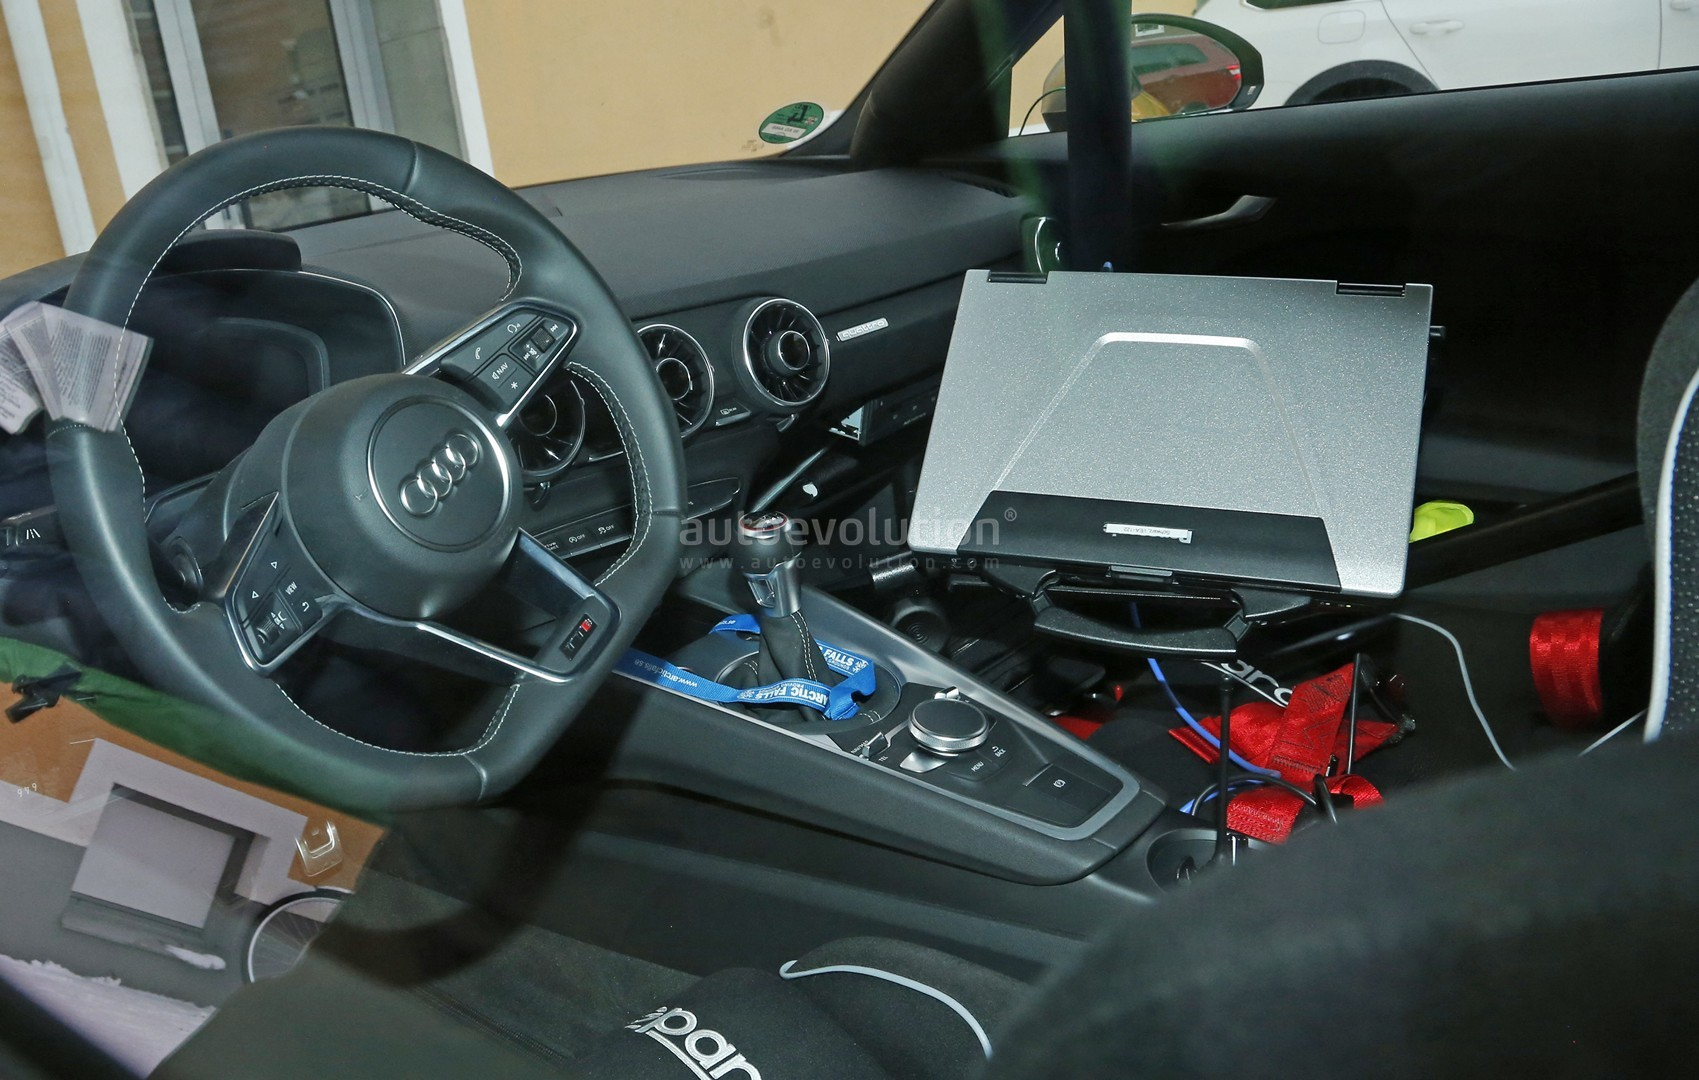 2017 Audi Tt Rs Spy Photos Reveal Manual Gearbox For The First Time